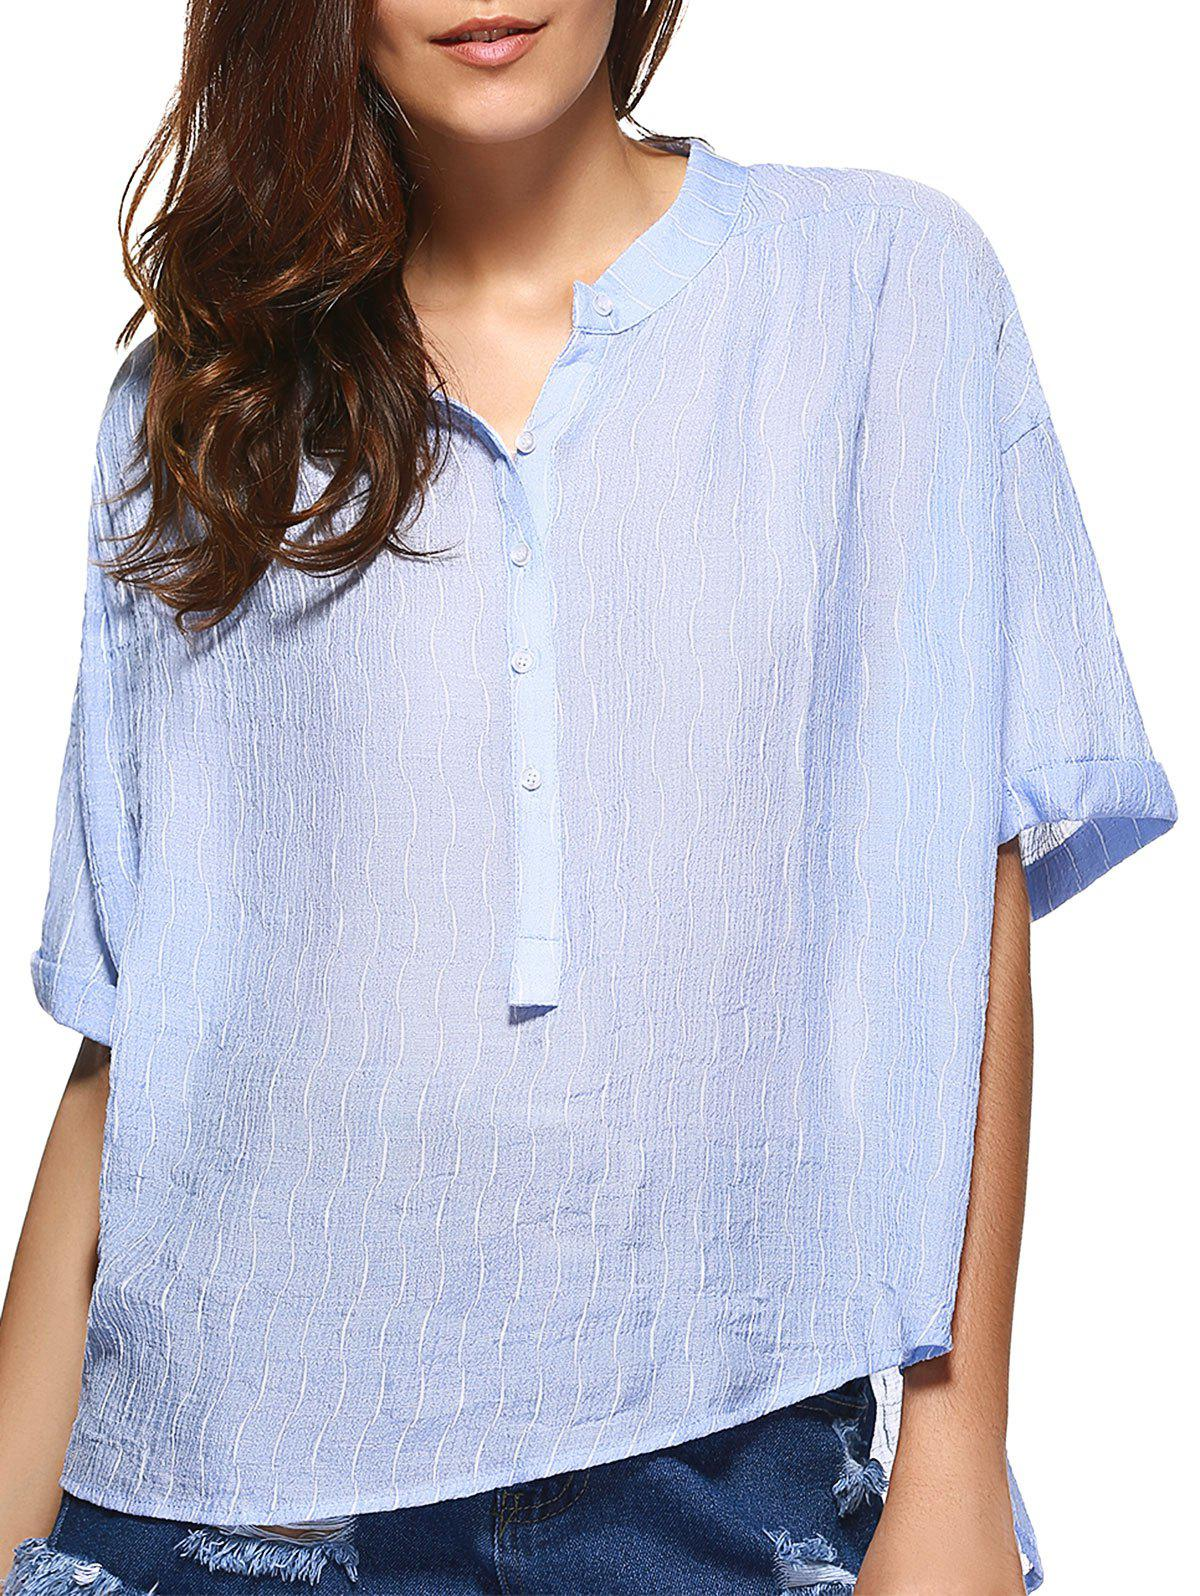 Brief Style Band Collar Wavy Striped Loose-Fitting Blouse For WomenWomen<br><br><br>Size: ONE SIZE(FIT SIZE XS TO M)<br>Color: LIGHT BLUE